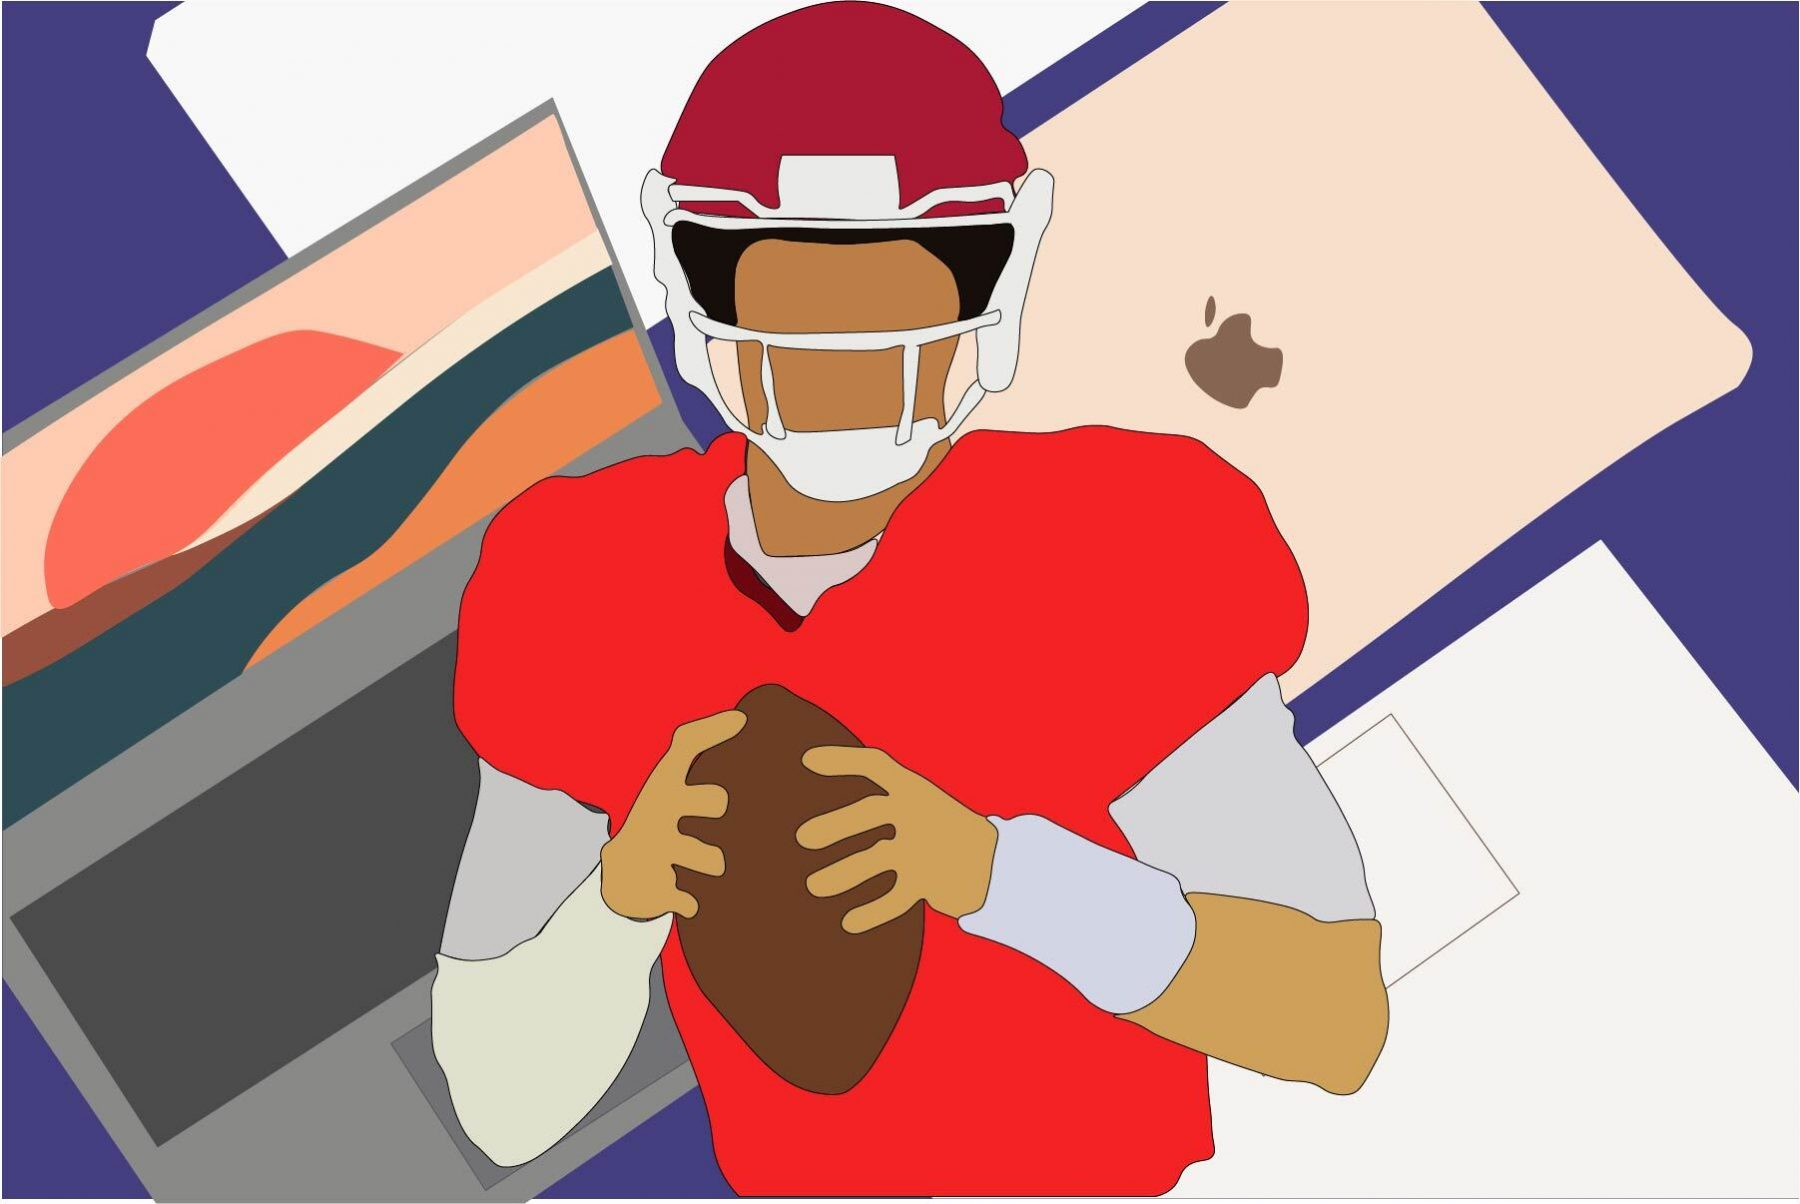 An illustration of a football player in front of a backdrop of Apple laptops representing all sports teams